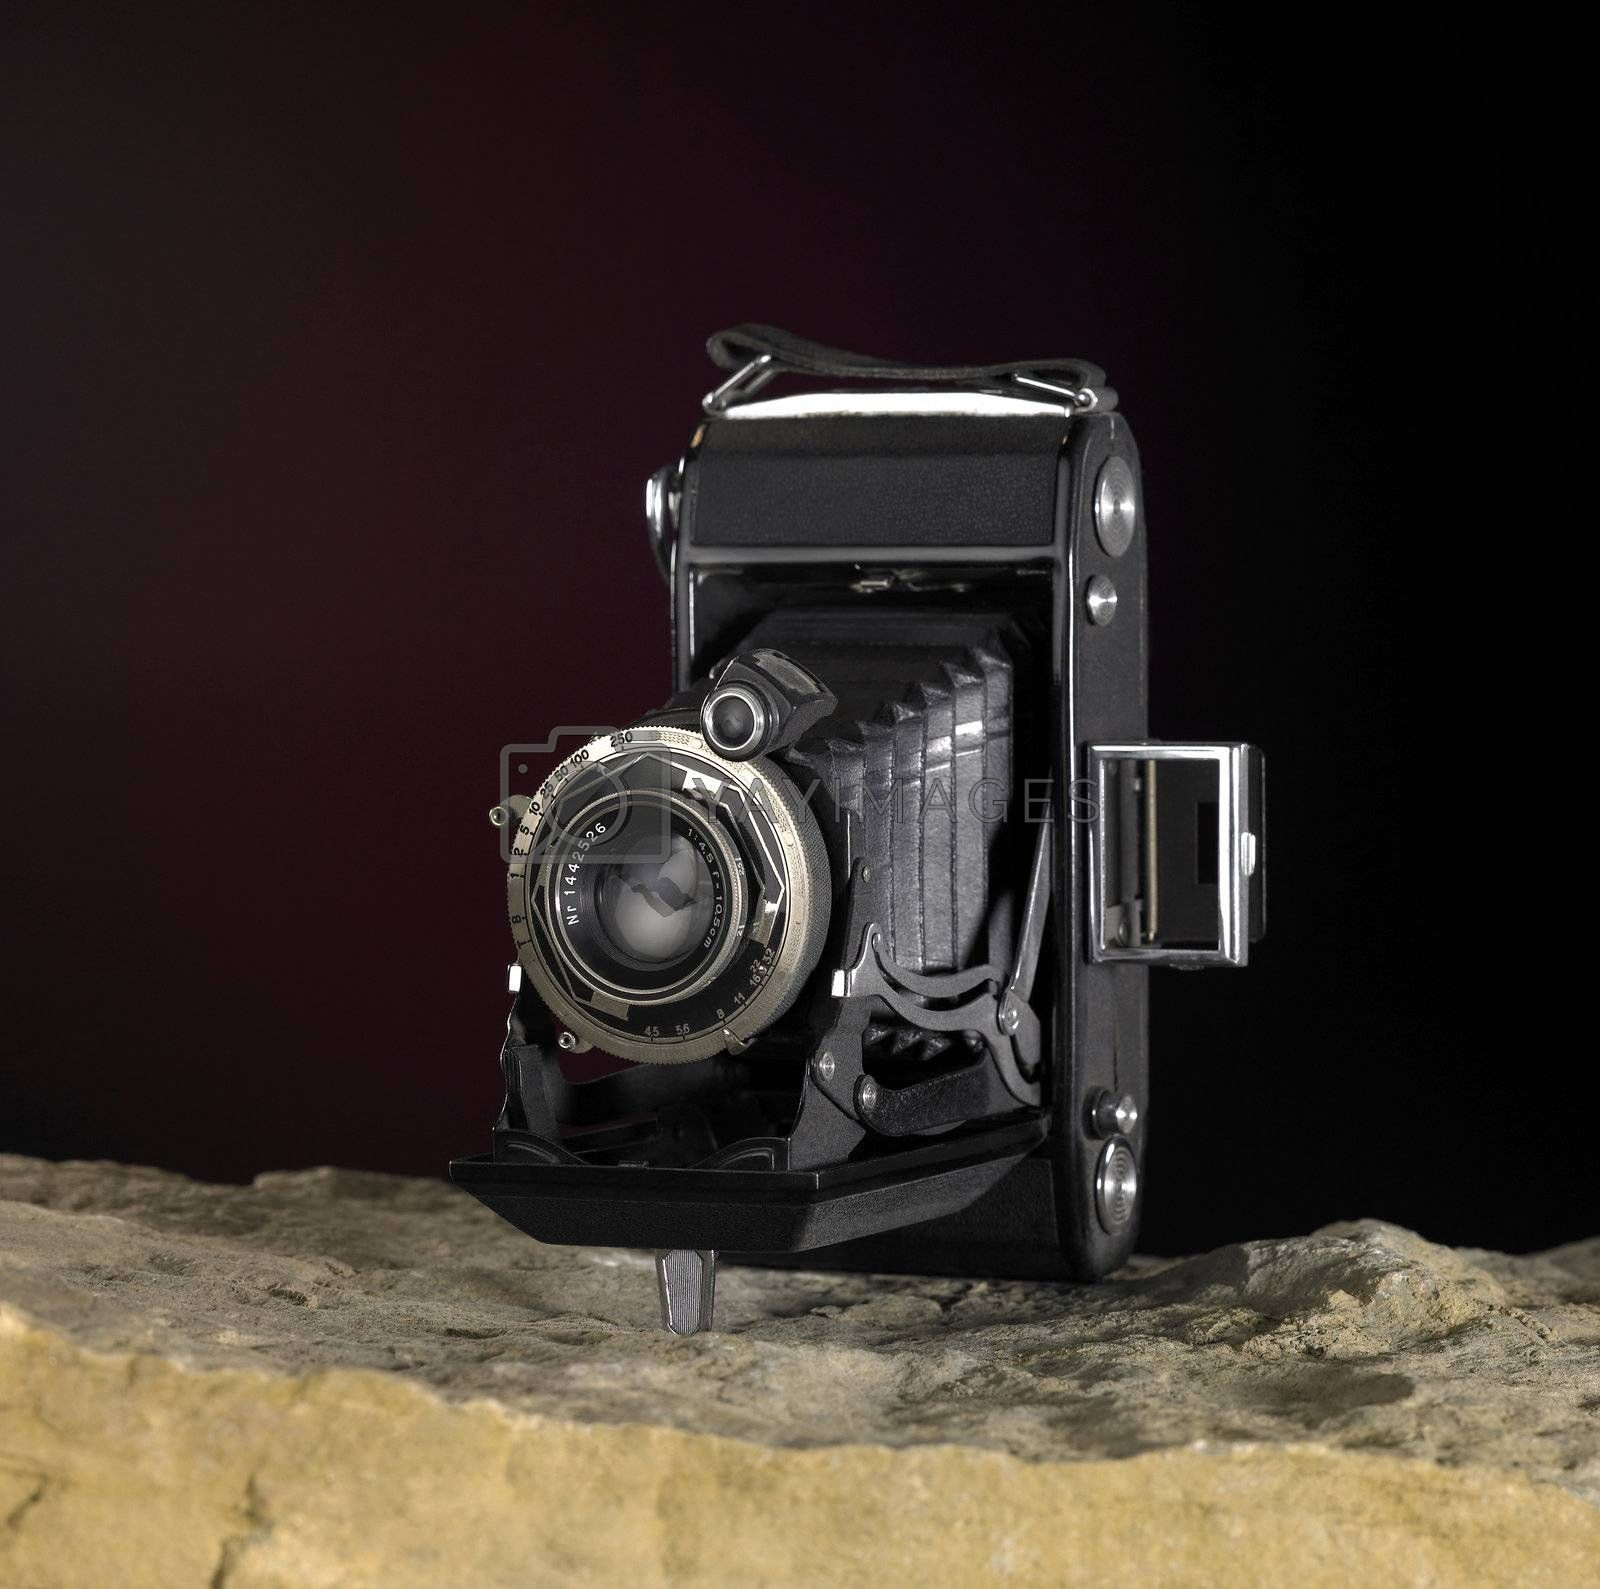 Still life with nostalgic camera on stone ground in front of dark back